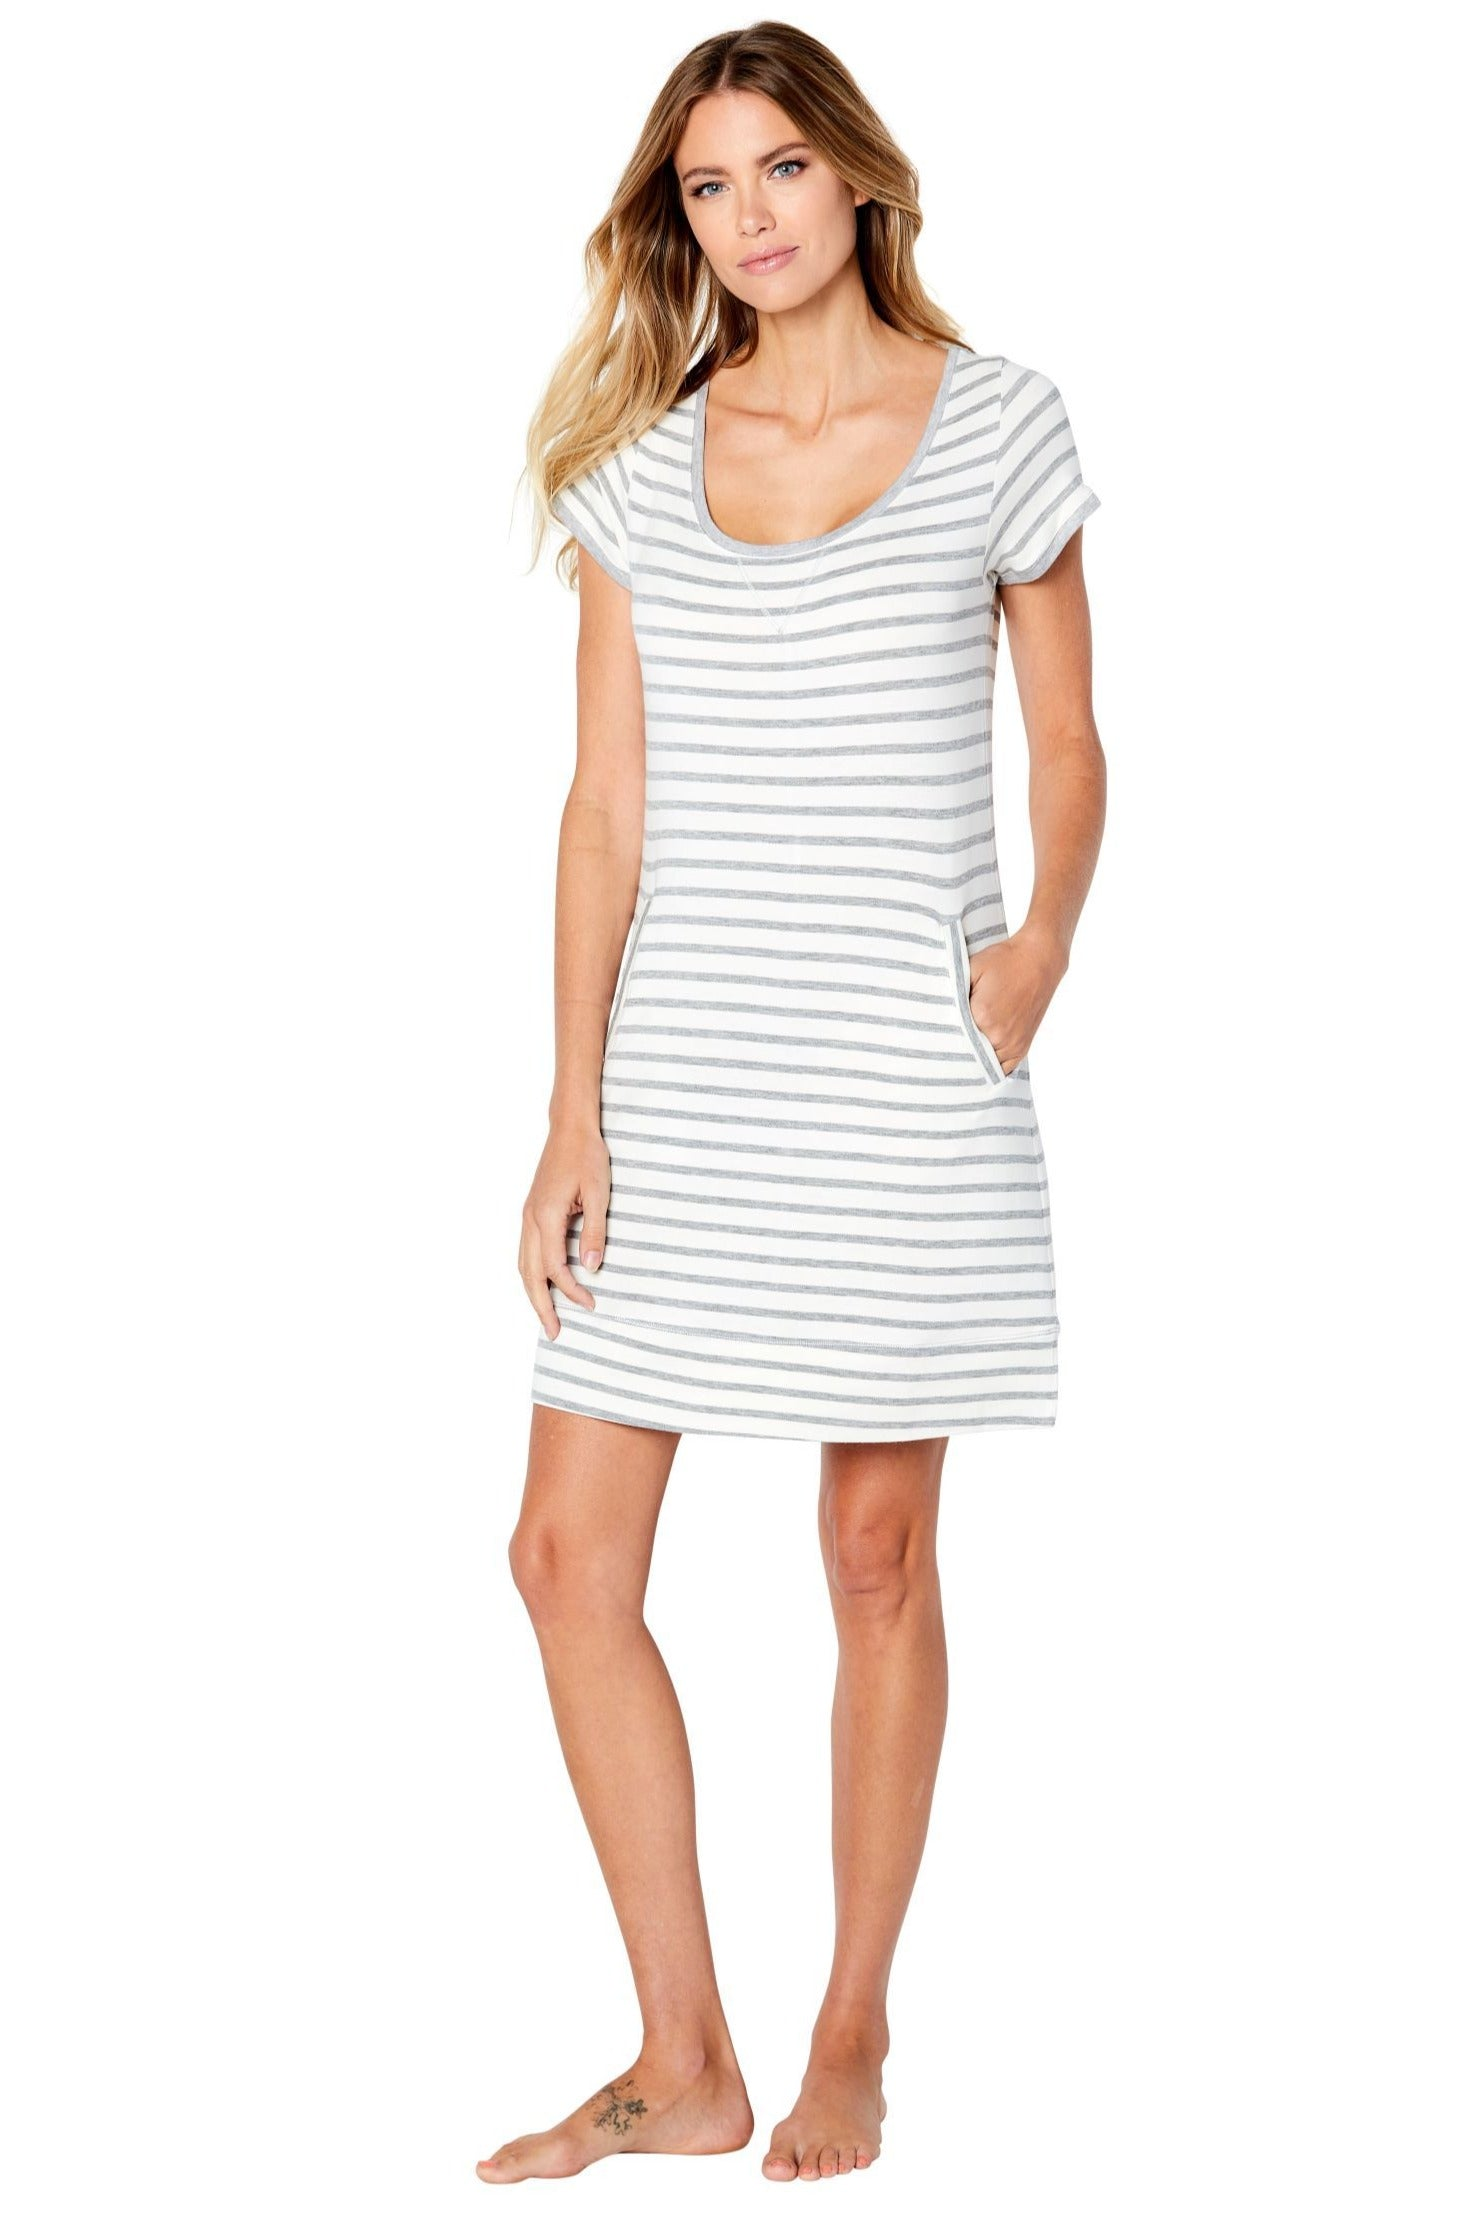 Malibu Short Sleeve Lounge Dress